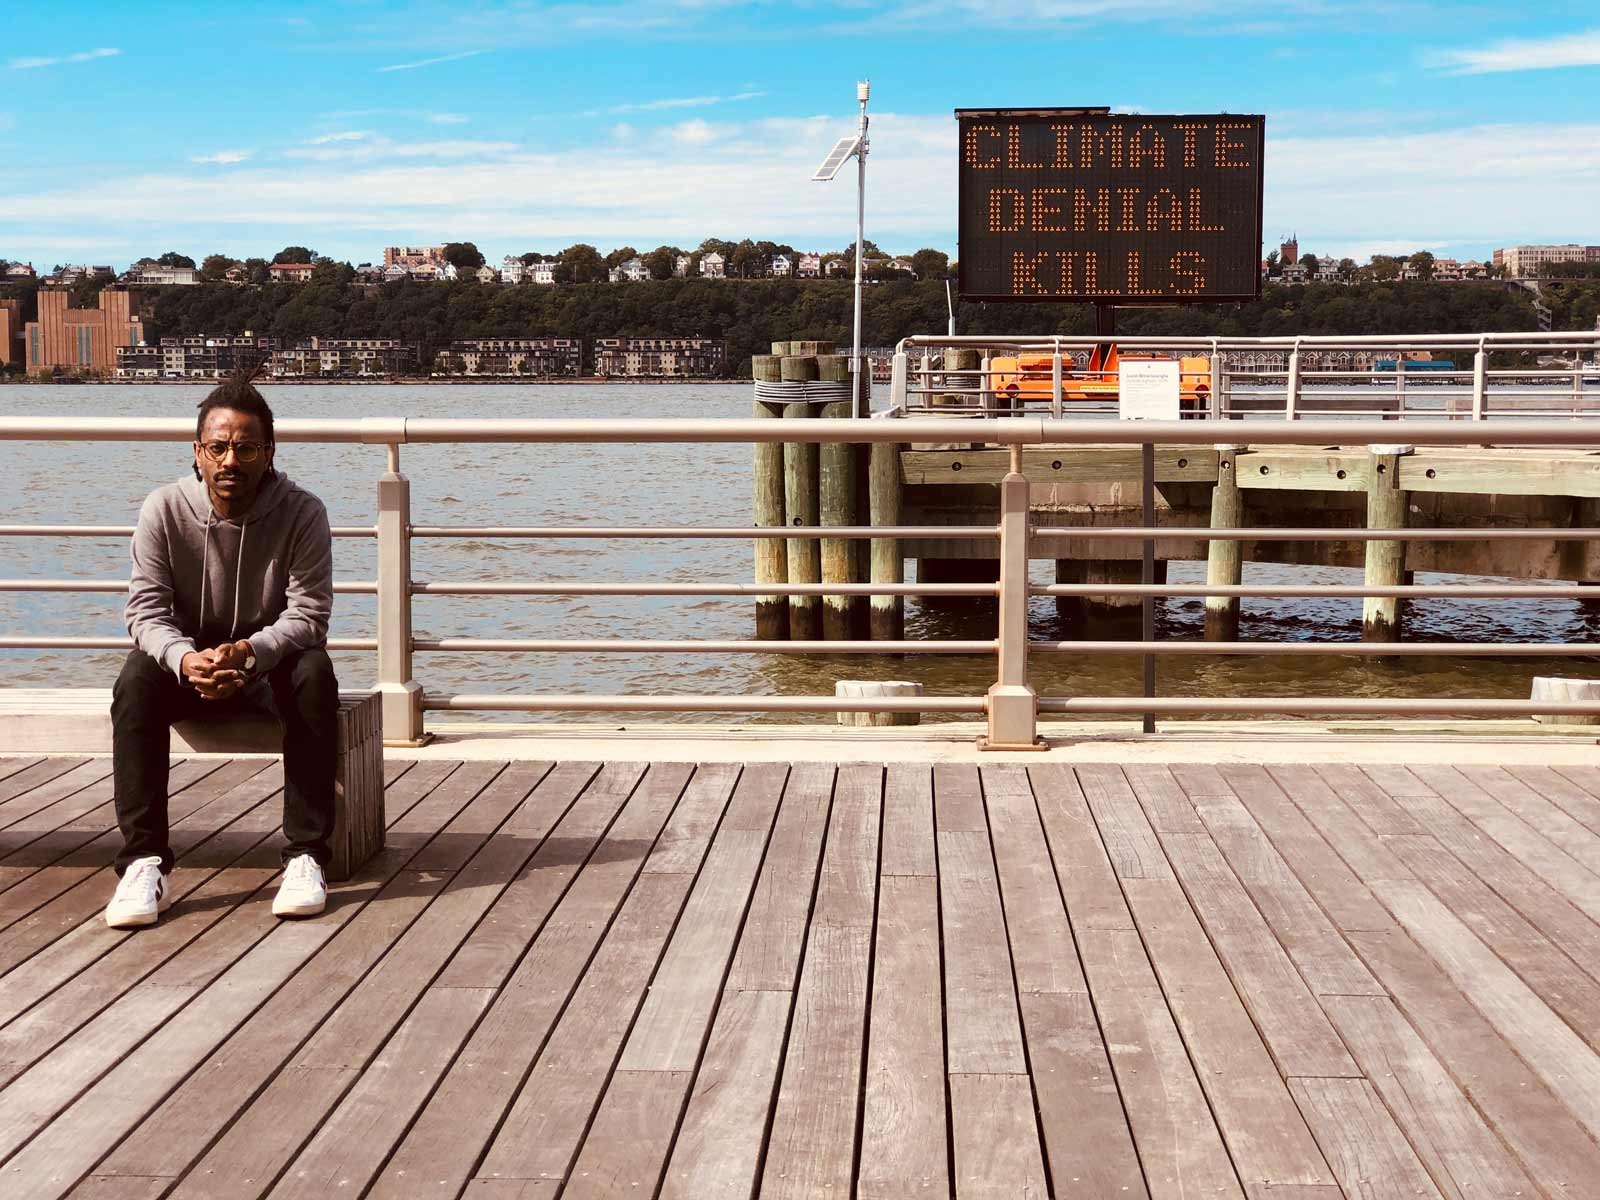 Man sitting on a bench on a boardwalk staring straight into the camera